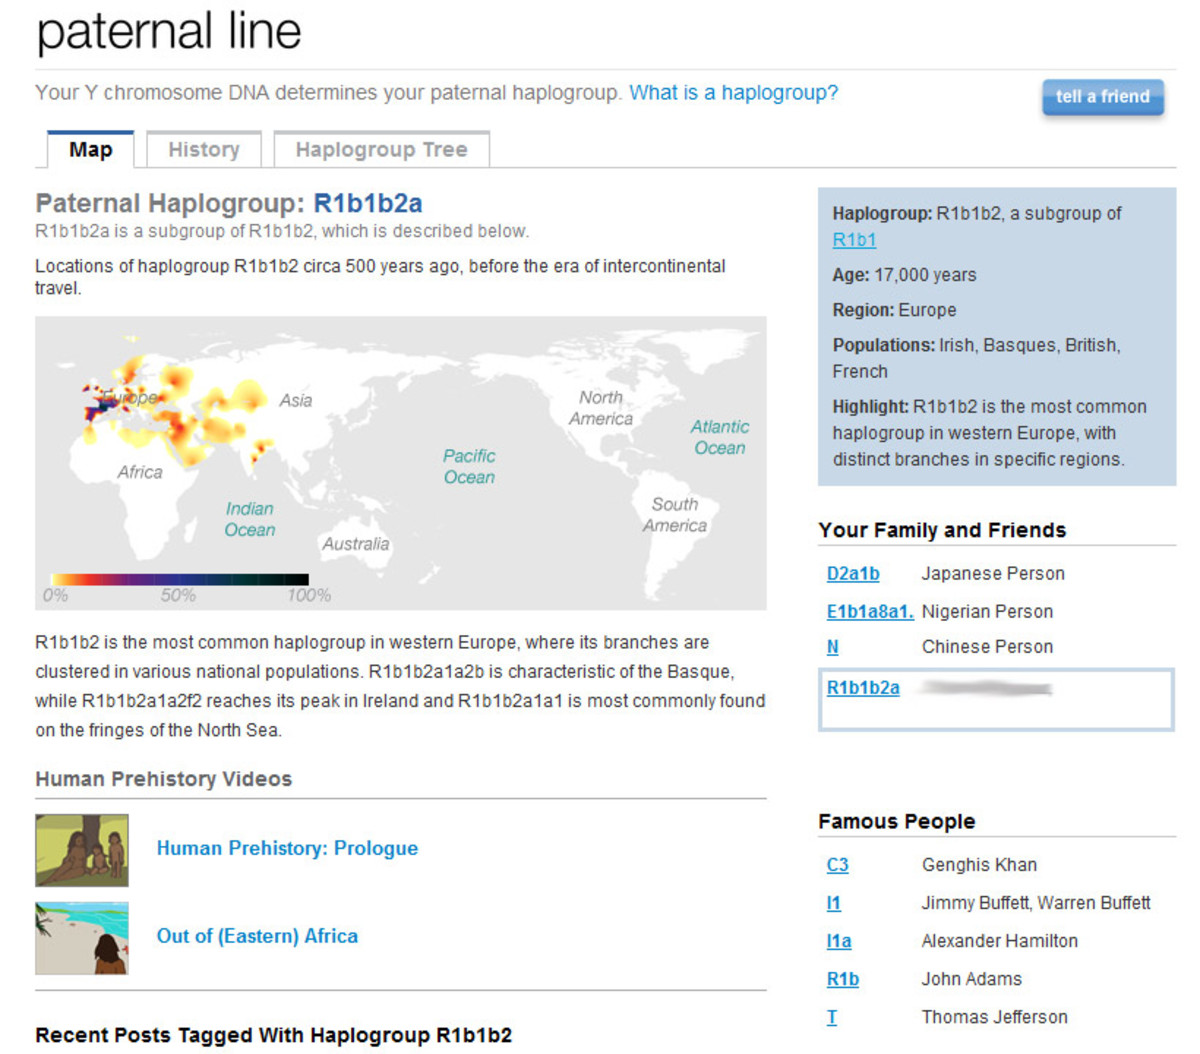 Your maternal (and paternal, if you're male) line description lets you know your haplogroup(s) and where your ancestors hail from (we're talking like 30,000-50,000 years ago...well before the dawn of history)